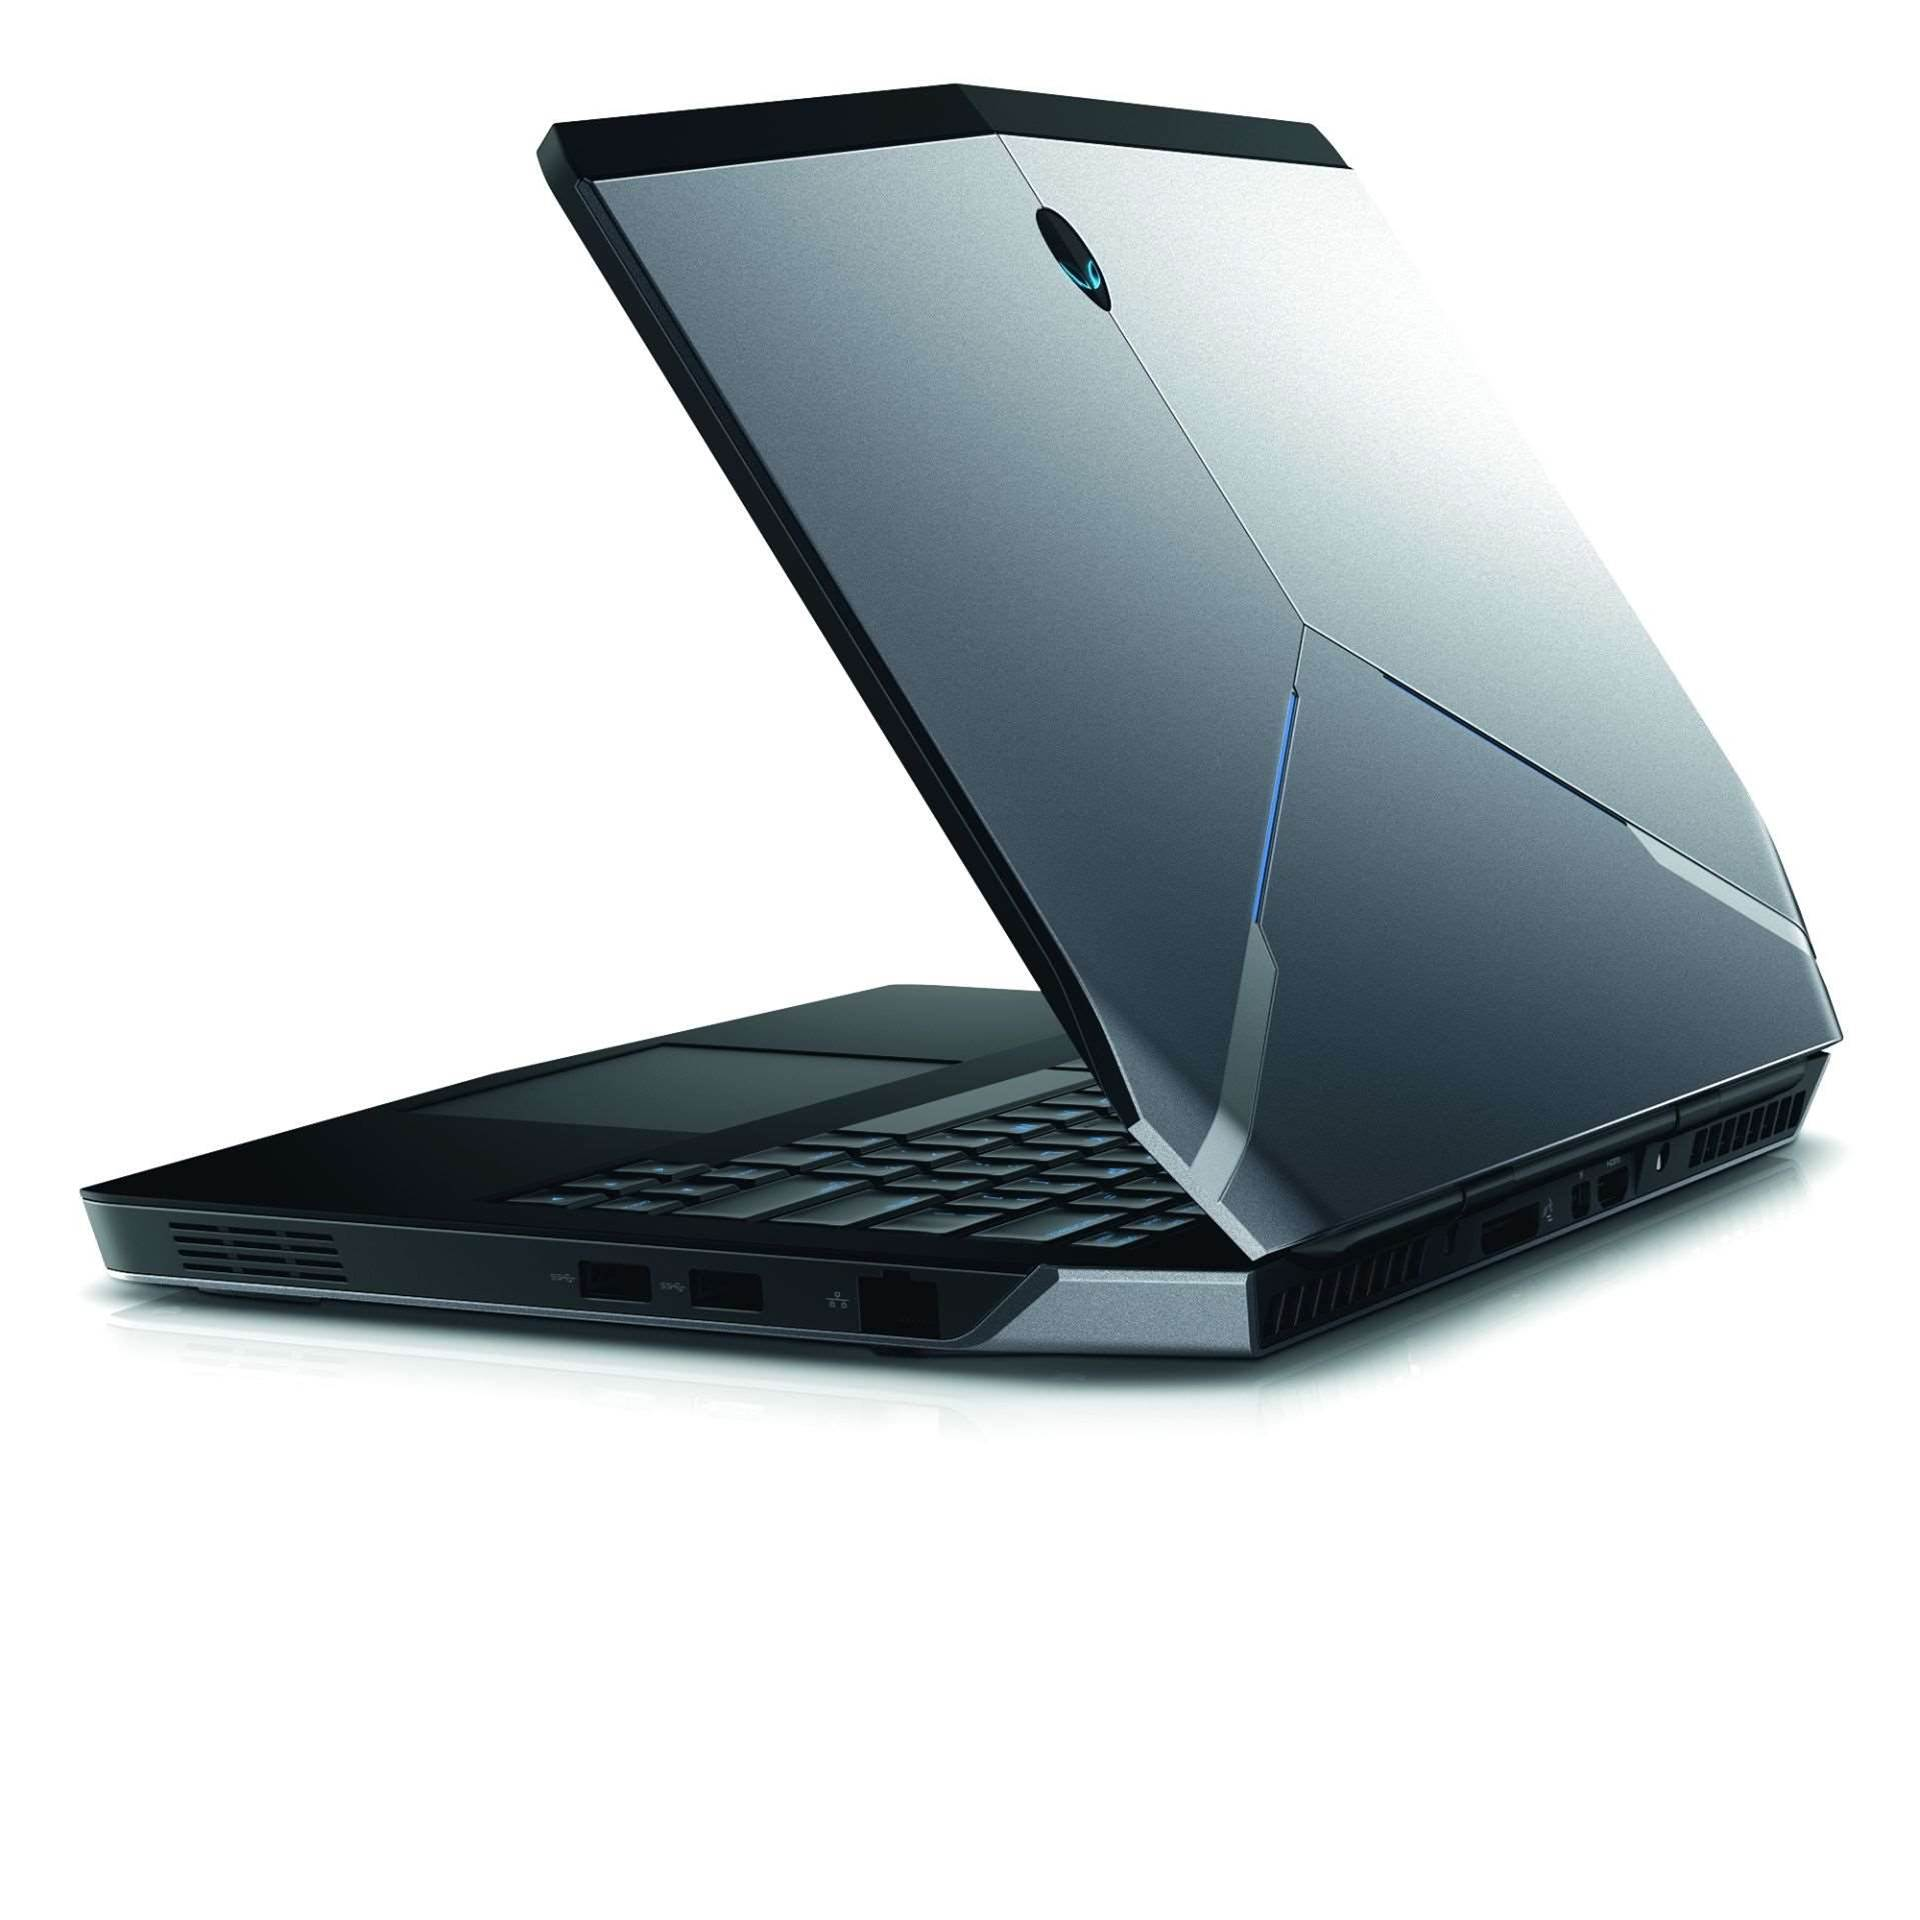 Review: Alienware 13 Laptop and Graphics Amplifier